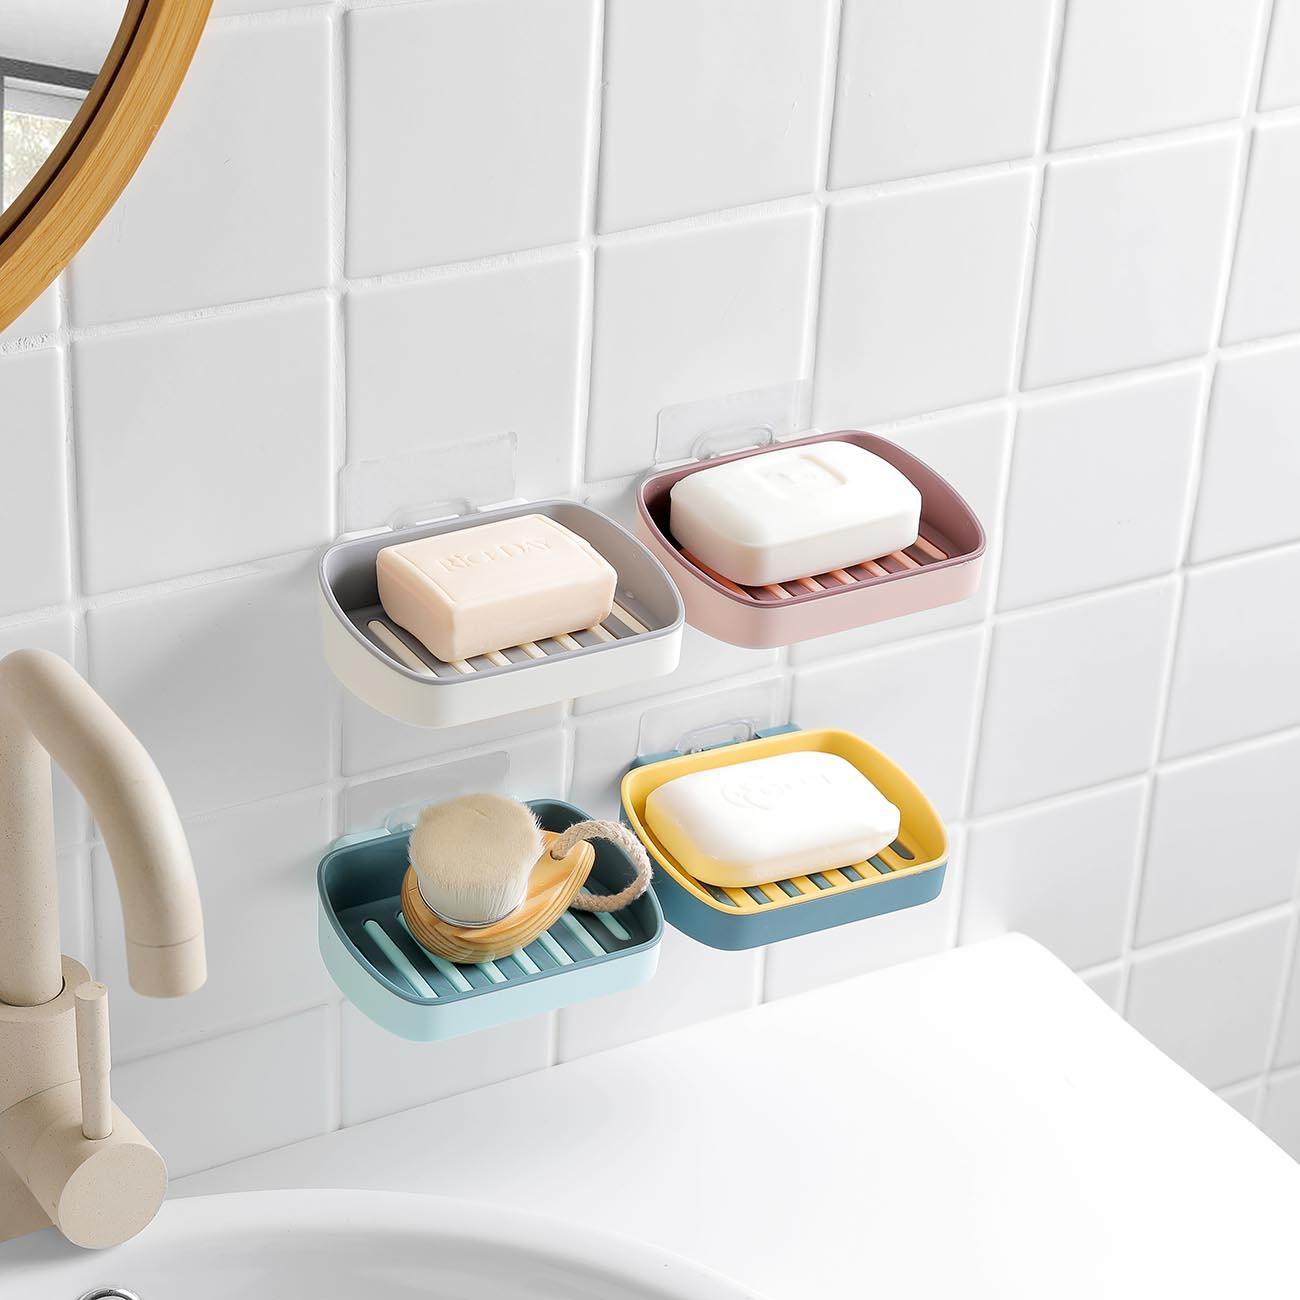 New Hot Wall Mounted Soap Holder Dish Double Layer Soap Box Container Tray Support Plate Saver Bathroom Organizer Detachable